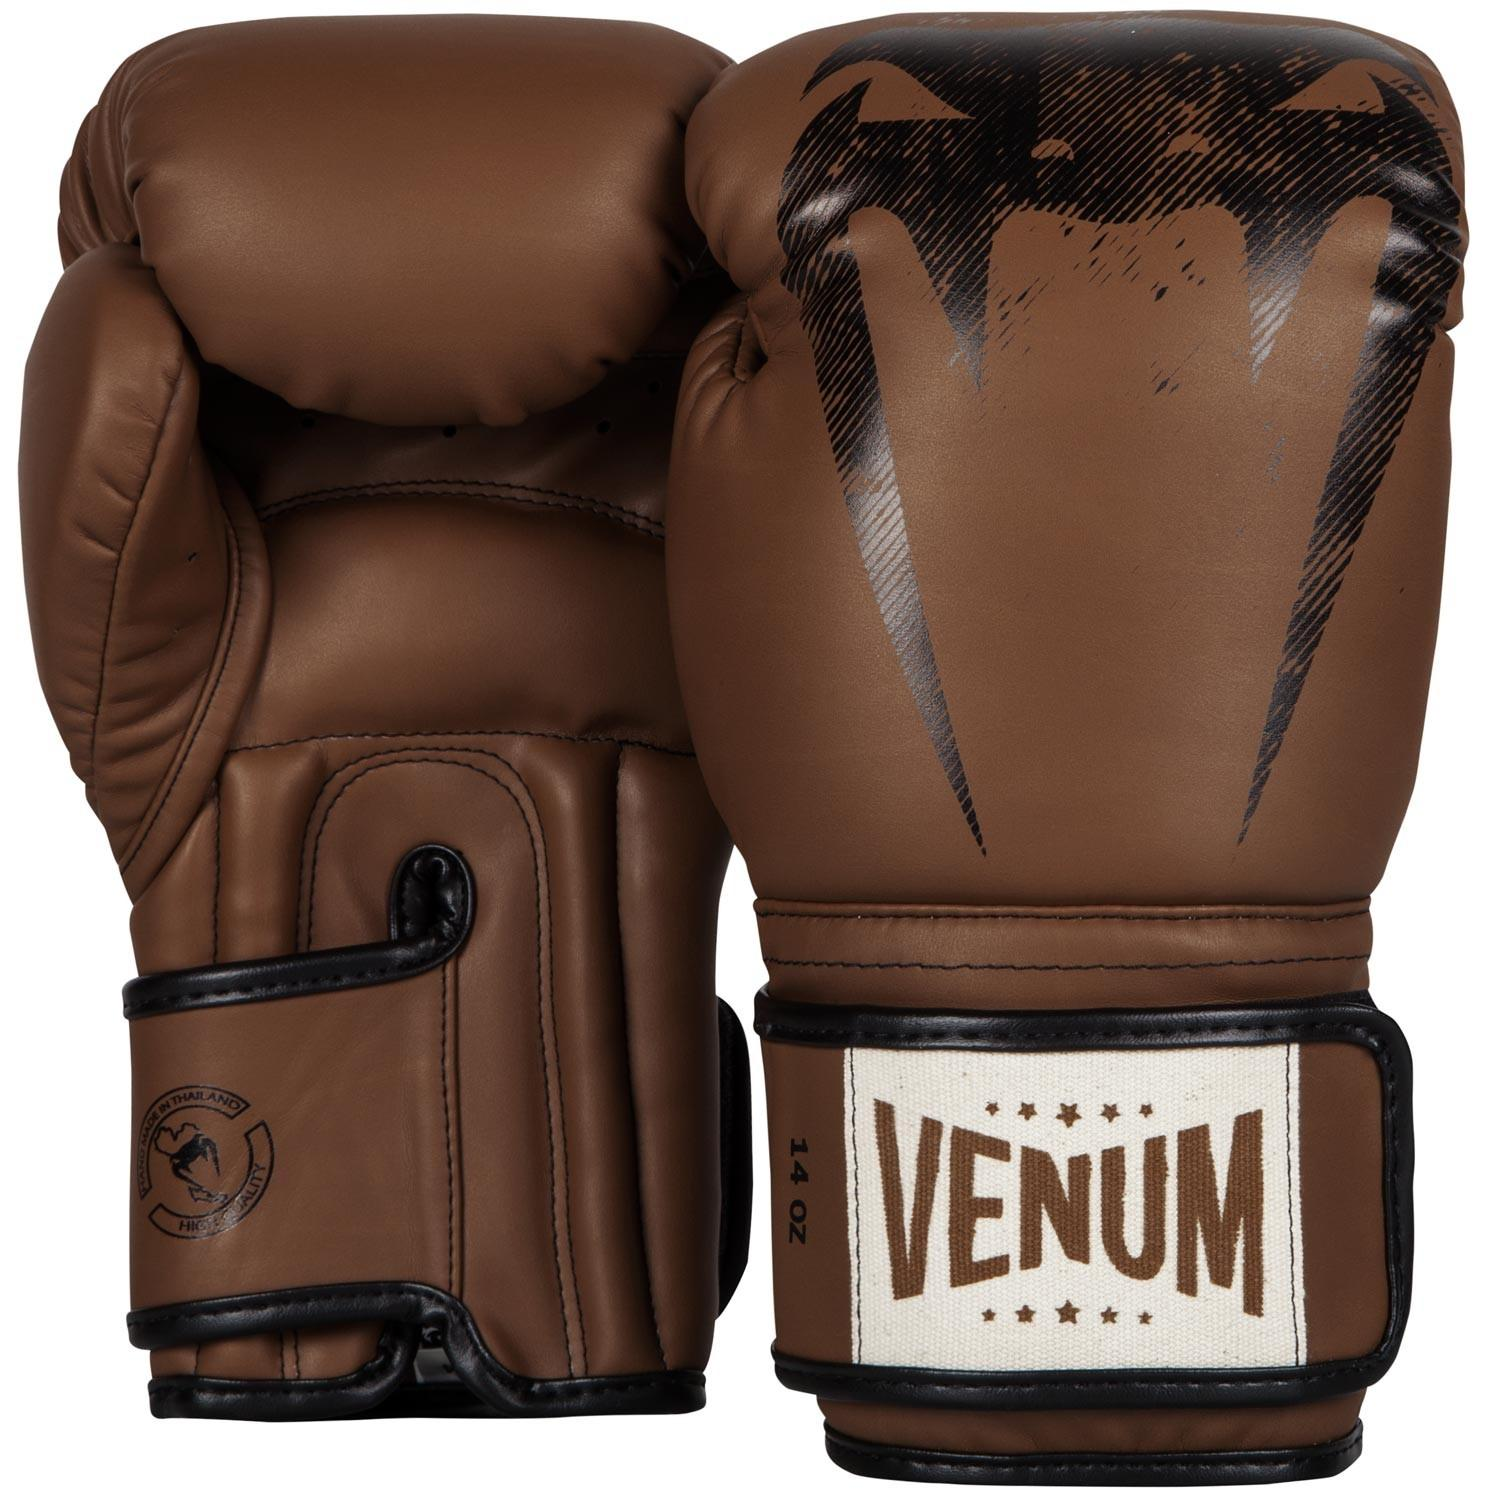 Boking Gloves: Amazon.com : Venum Giant Sparring Boxing Gloves : Sports